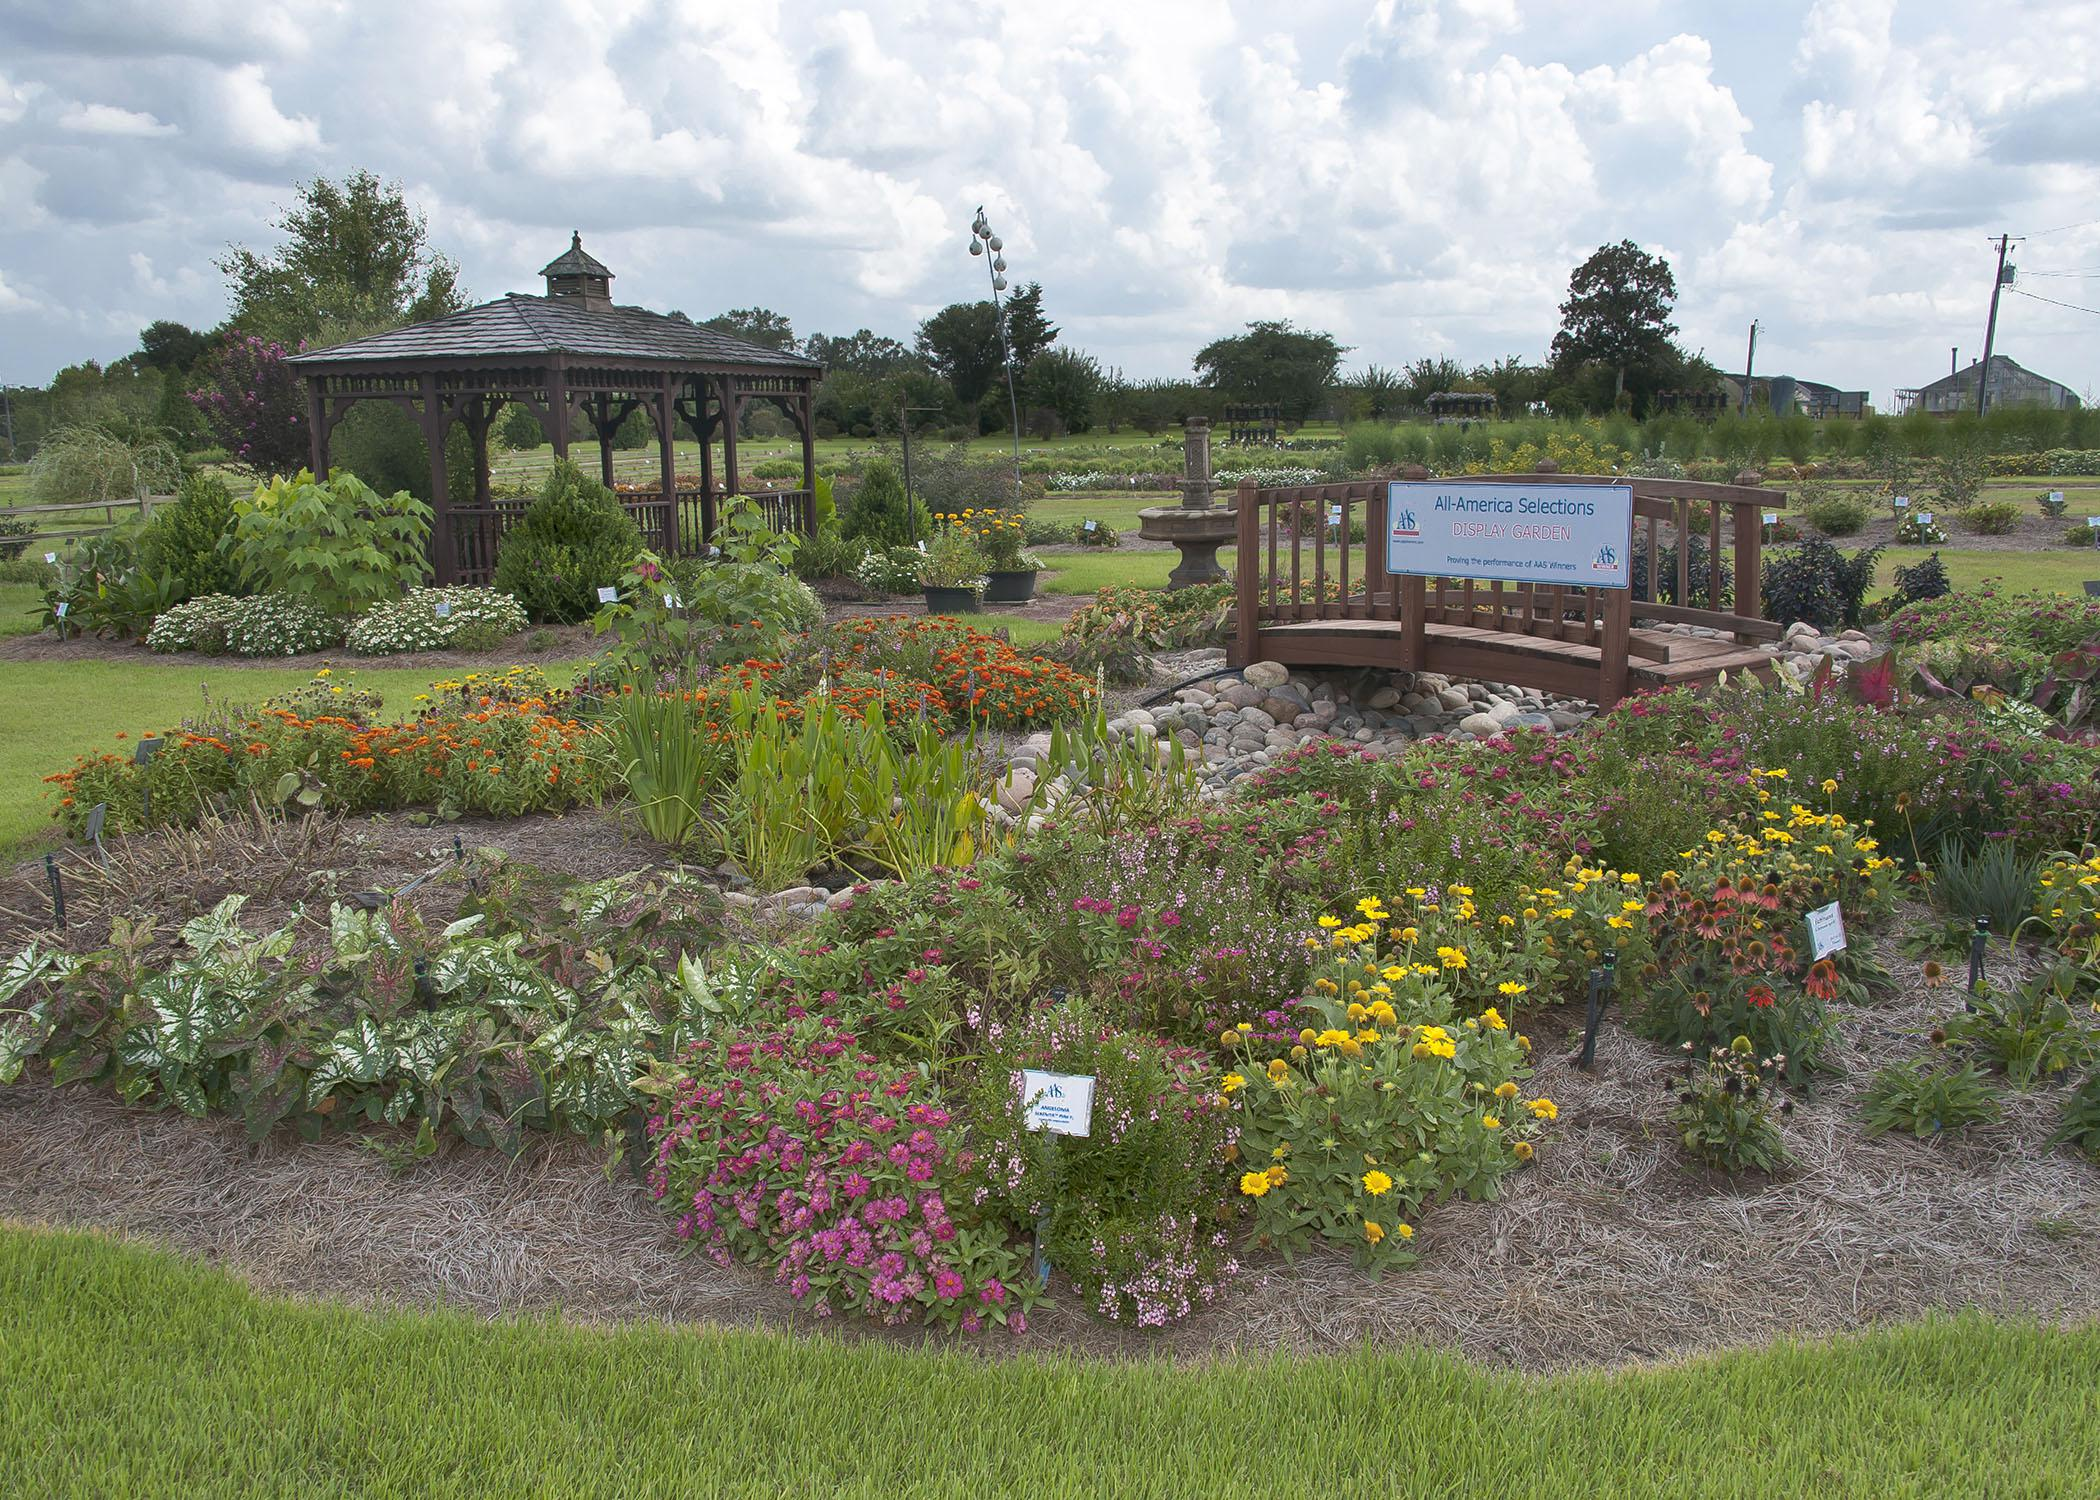 The All-America Selections garden at the Mississippi State University South Mississippi Branch Experiment Station in Poplarville is in full bloom for the Ornamental Horticulture Field Day set for Oct. 2, 2014. Visitors that day can tour the demonstration gardens and hear updates on the latest research. (Photo by MSU Ag Communications/Kevin Hudson)